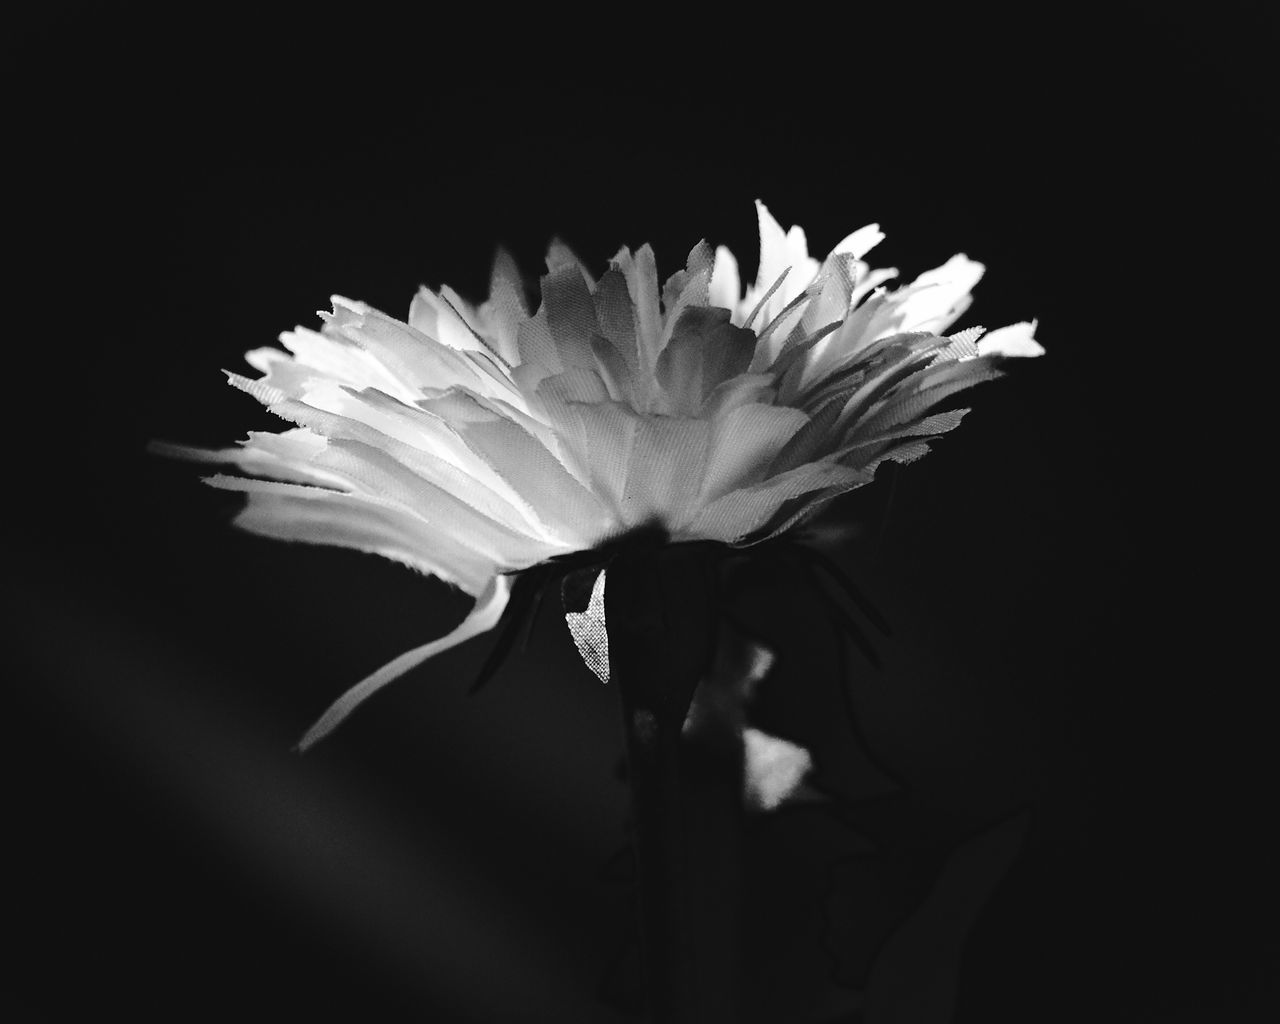 Beauty In Nature Black Background Close-up Day Flower Flower Head Fragility Freshness Growth Nature No People Outdoors Petal Plant Studio Shot